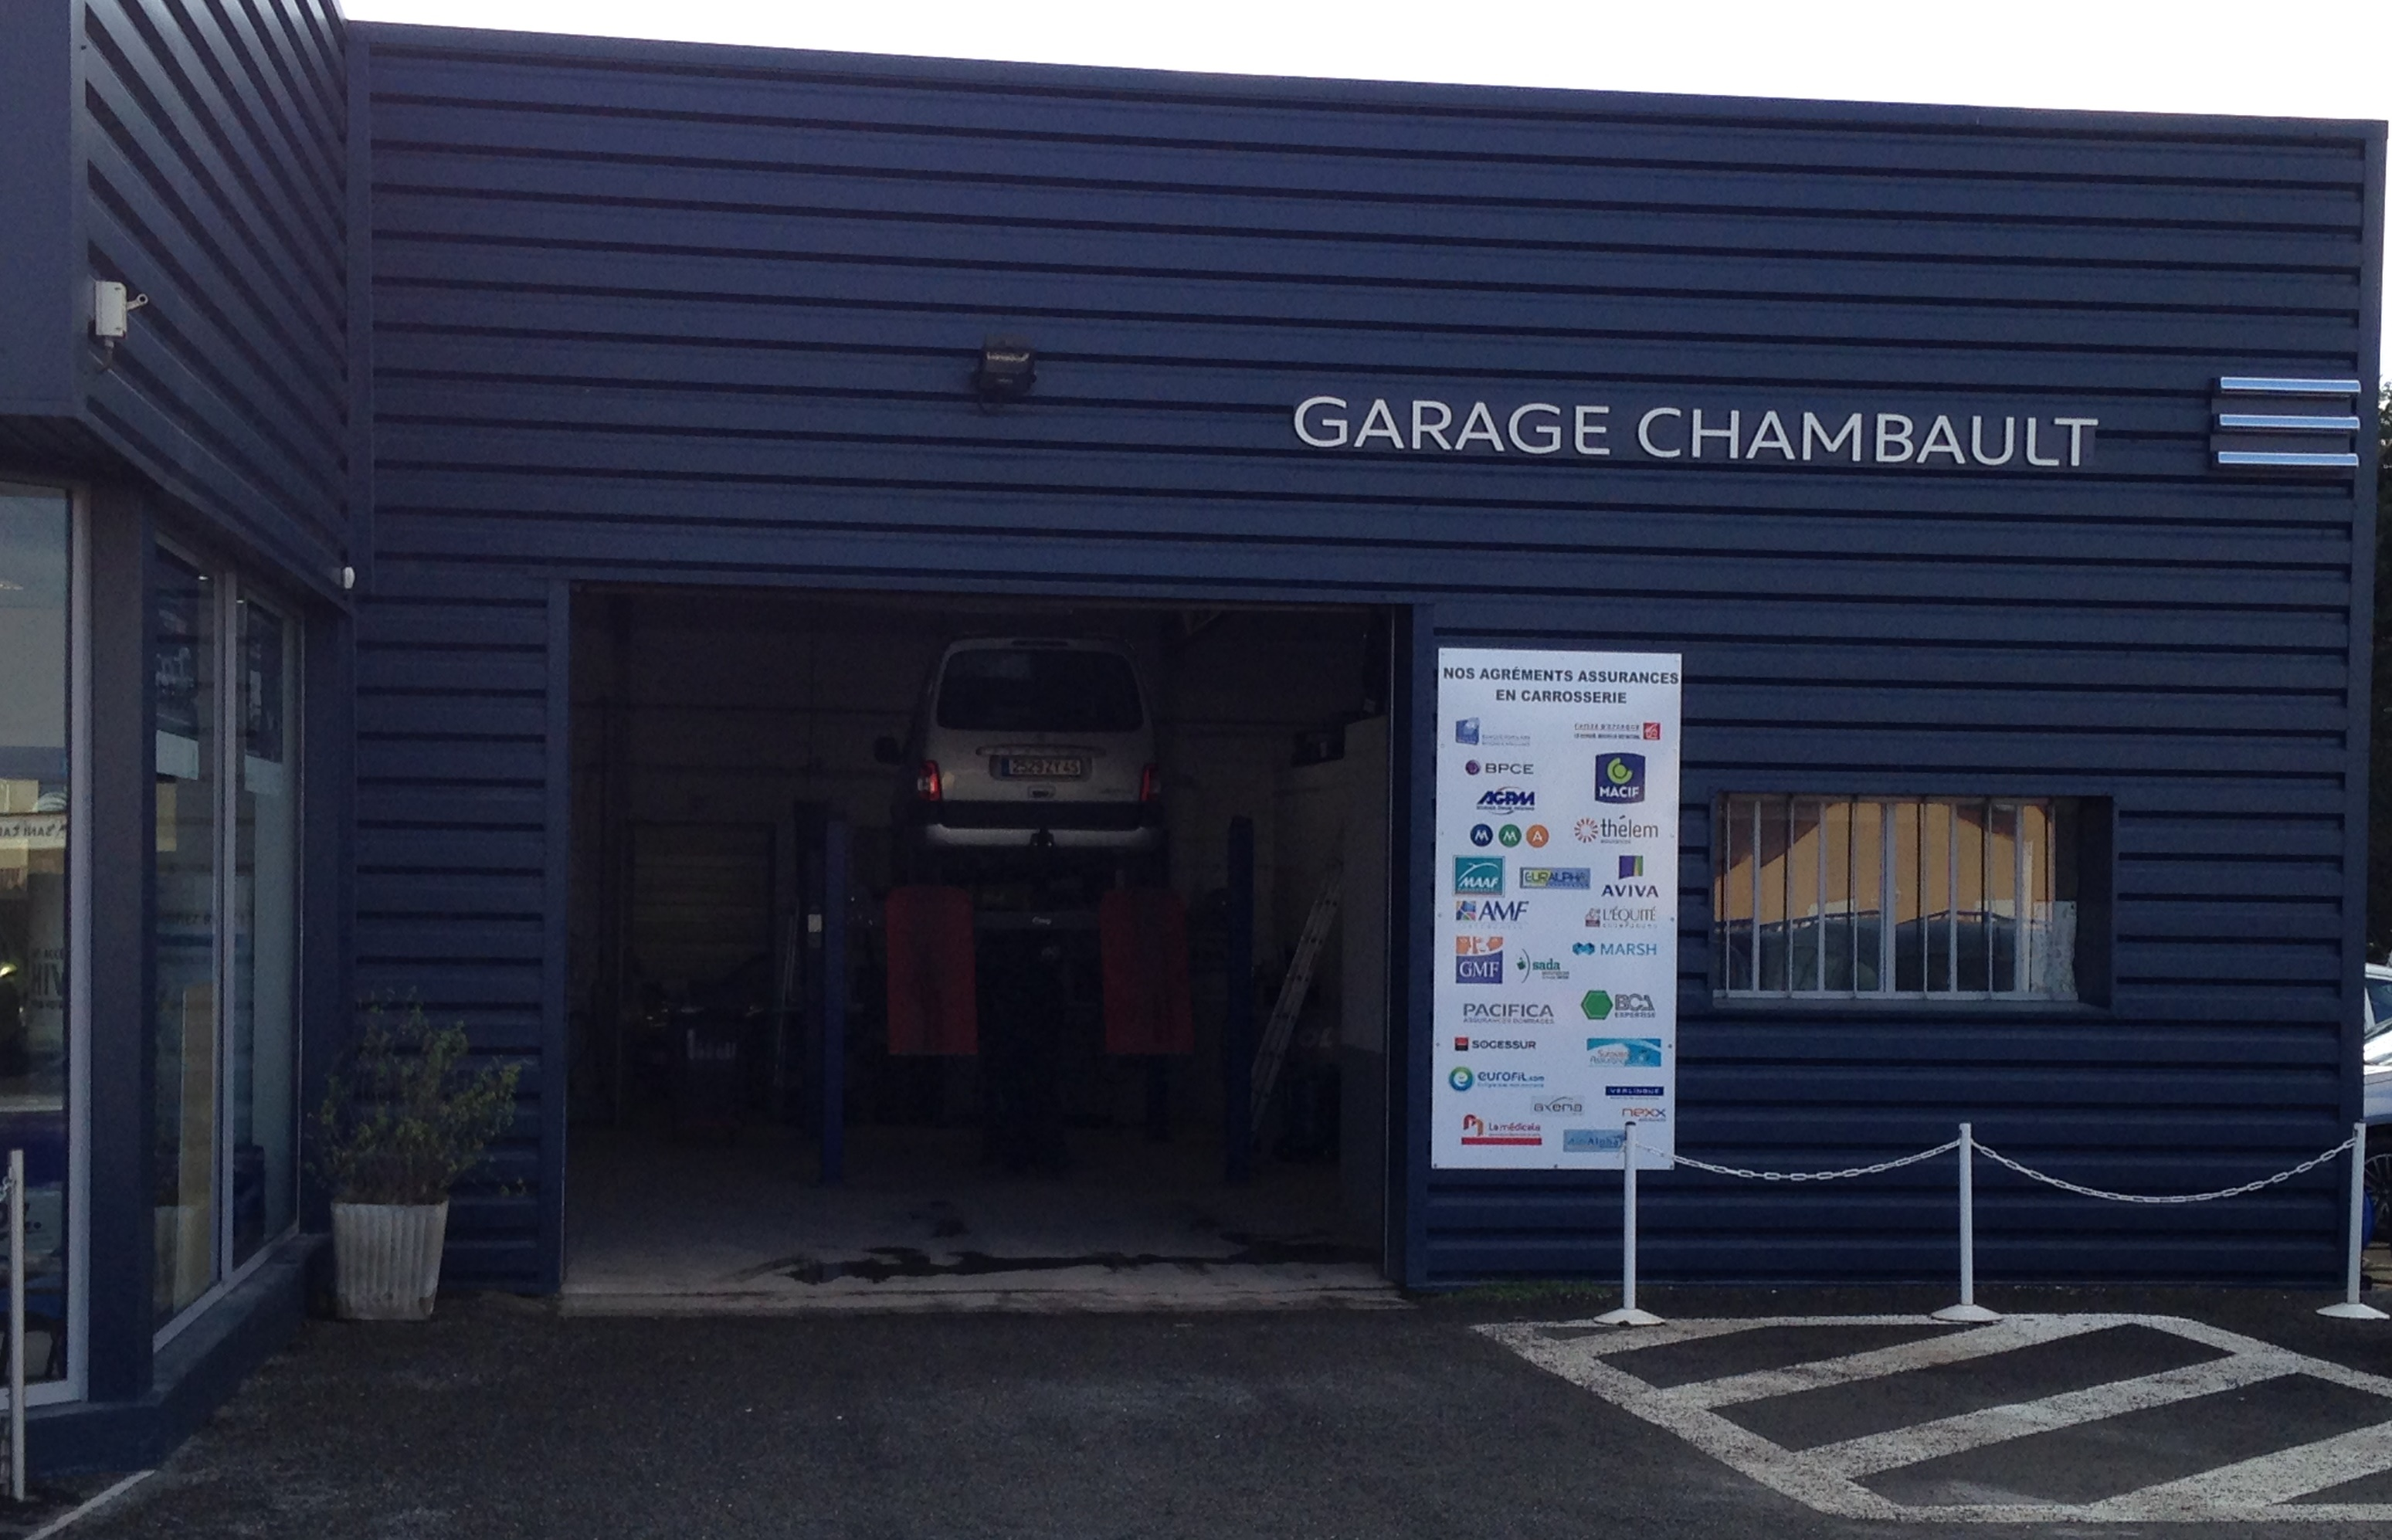 Pr sentation de la soci t garage chambault for Garage peugeot chateaulin